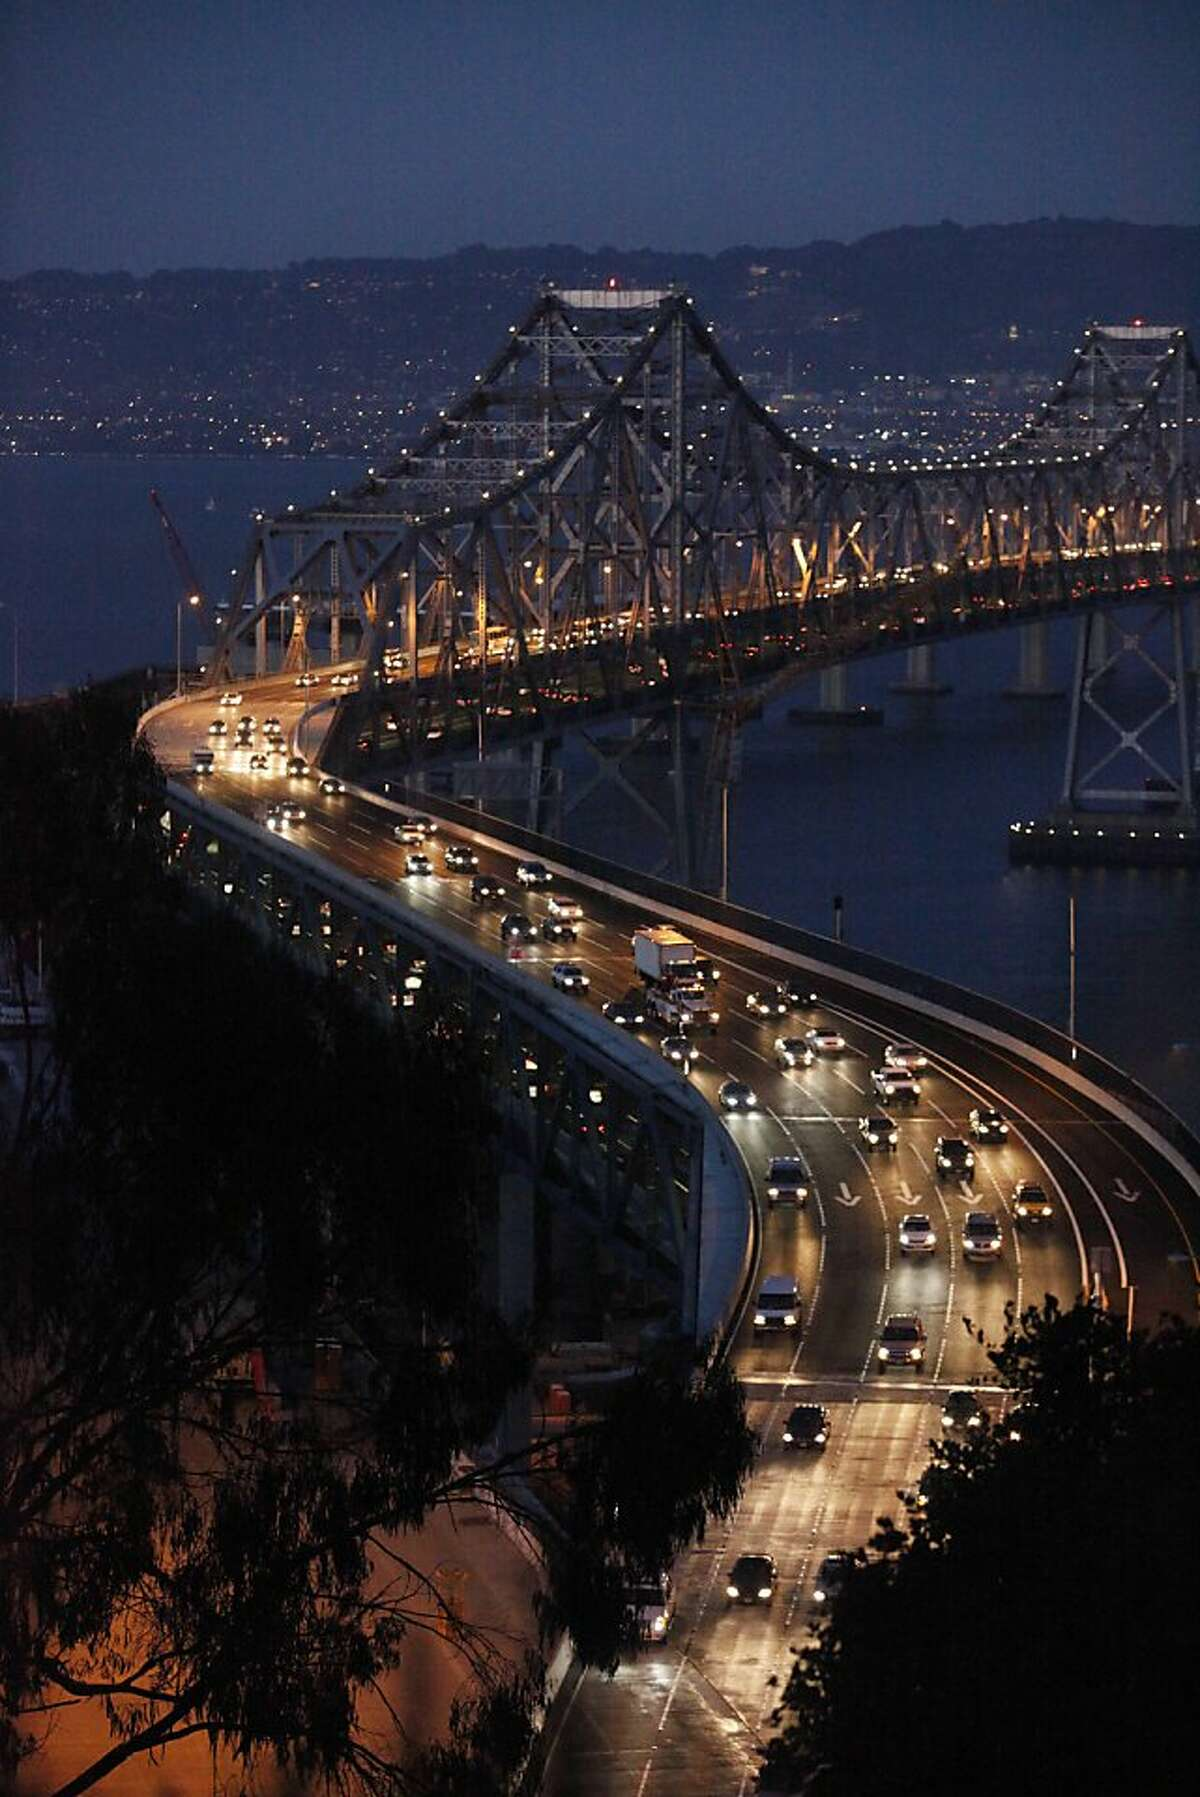 Friday night commuters reduce there speed going through the newest curve on the Bay Bridge on Friday Sep. 18, 2009 in San Francisco, Calif.